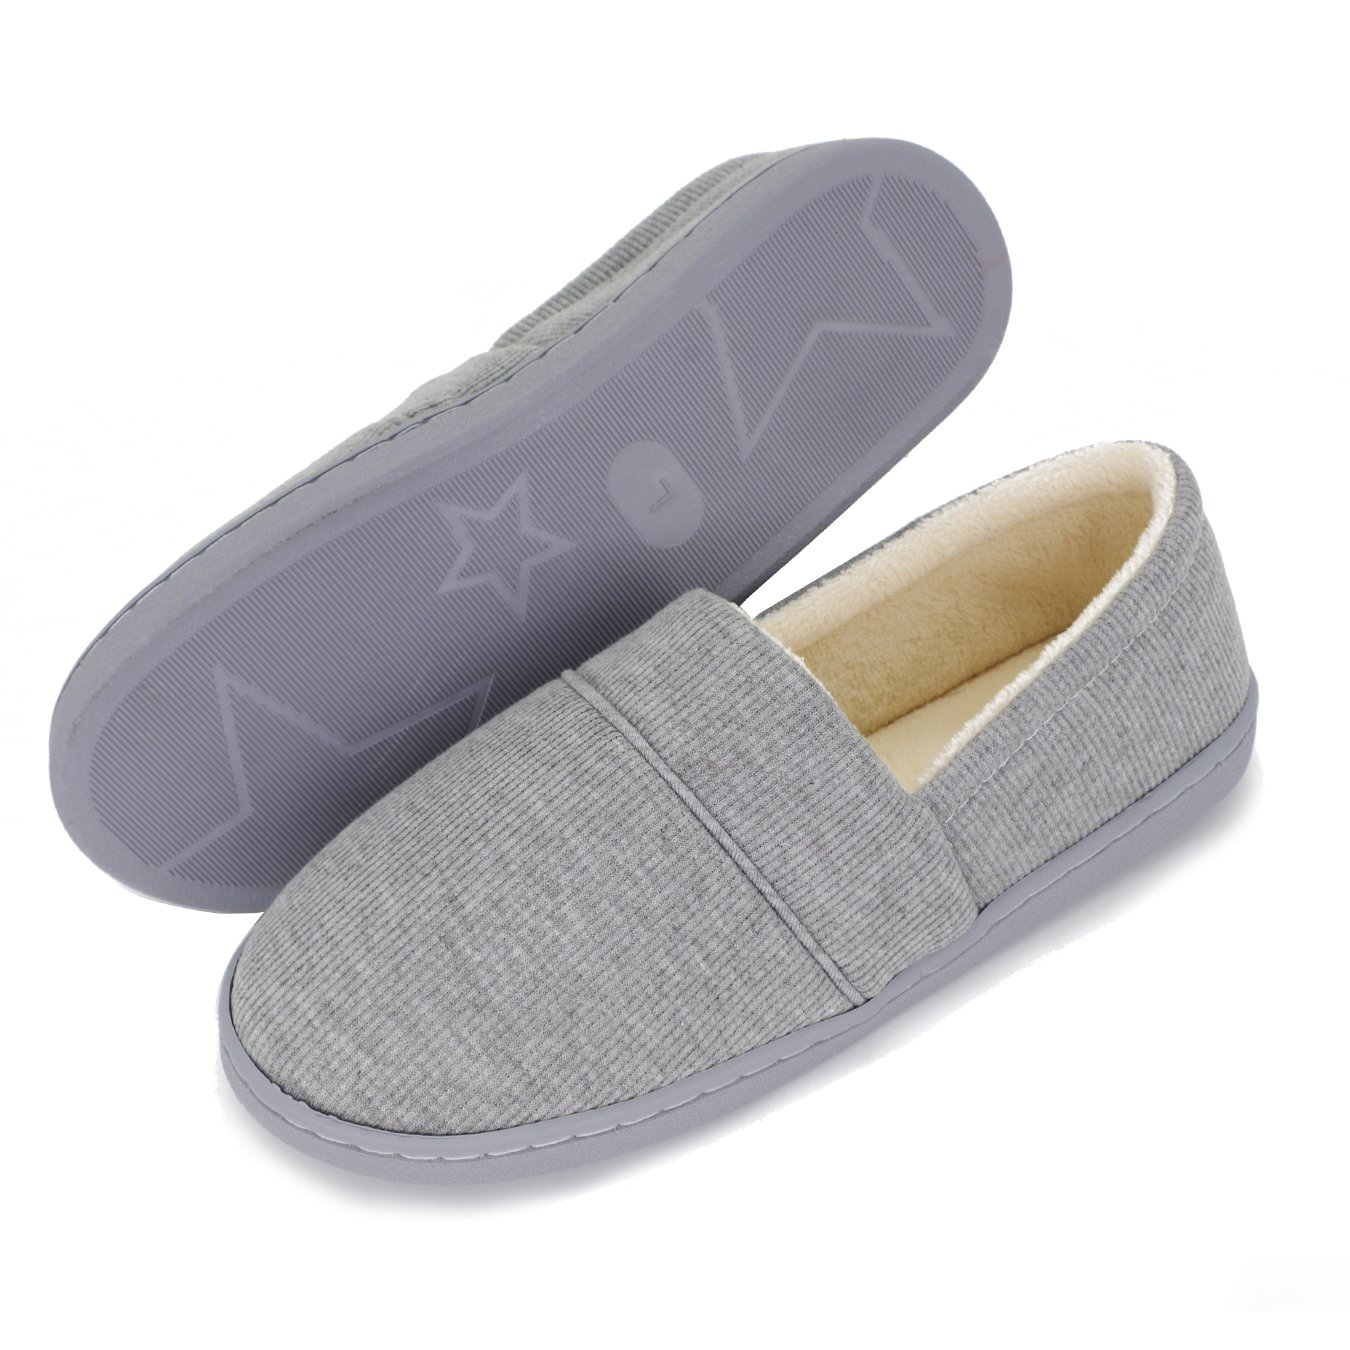 Moodeng Cotton Slippers for Women Knit Anti-Slip Lightweight Soft Comfort House Slippers Slip-on Velvety Home Shoes by Moodeng (Image #3)